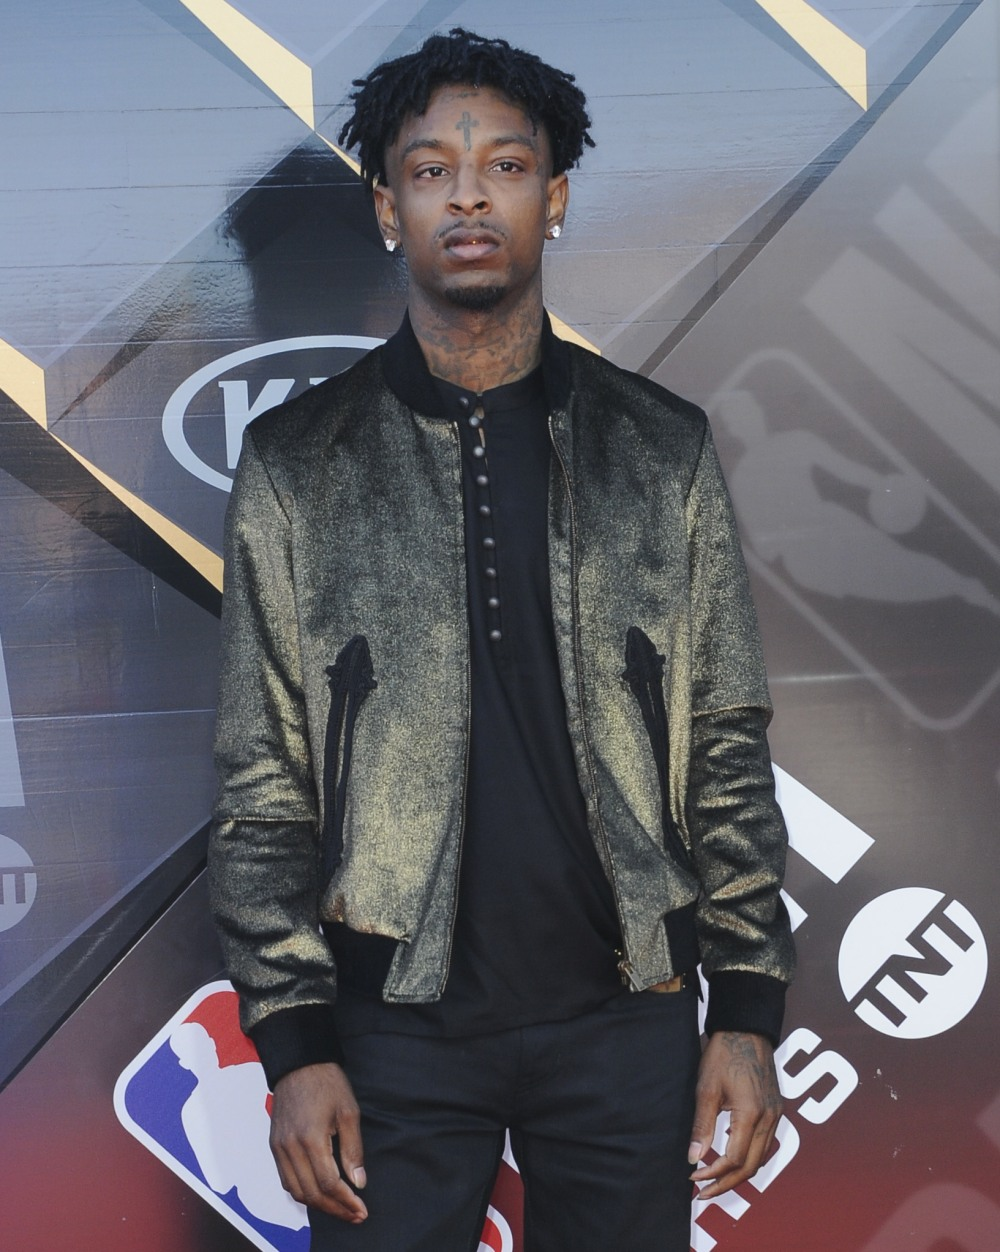 21 Savage's lawyer released a statement on his client's detainment & deportation